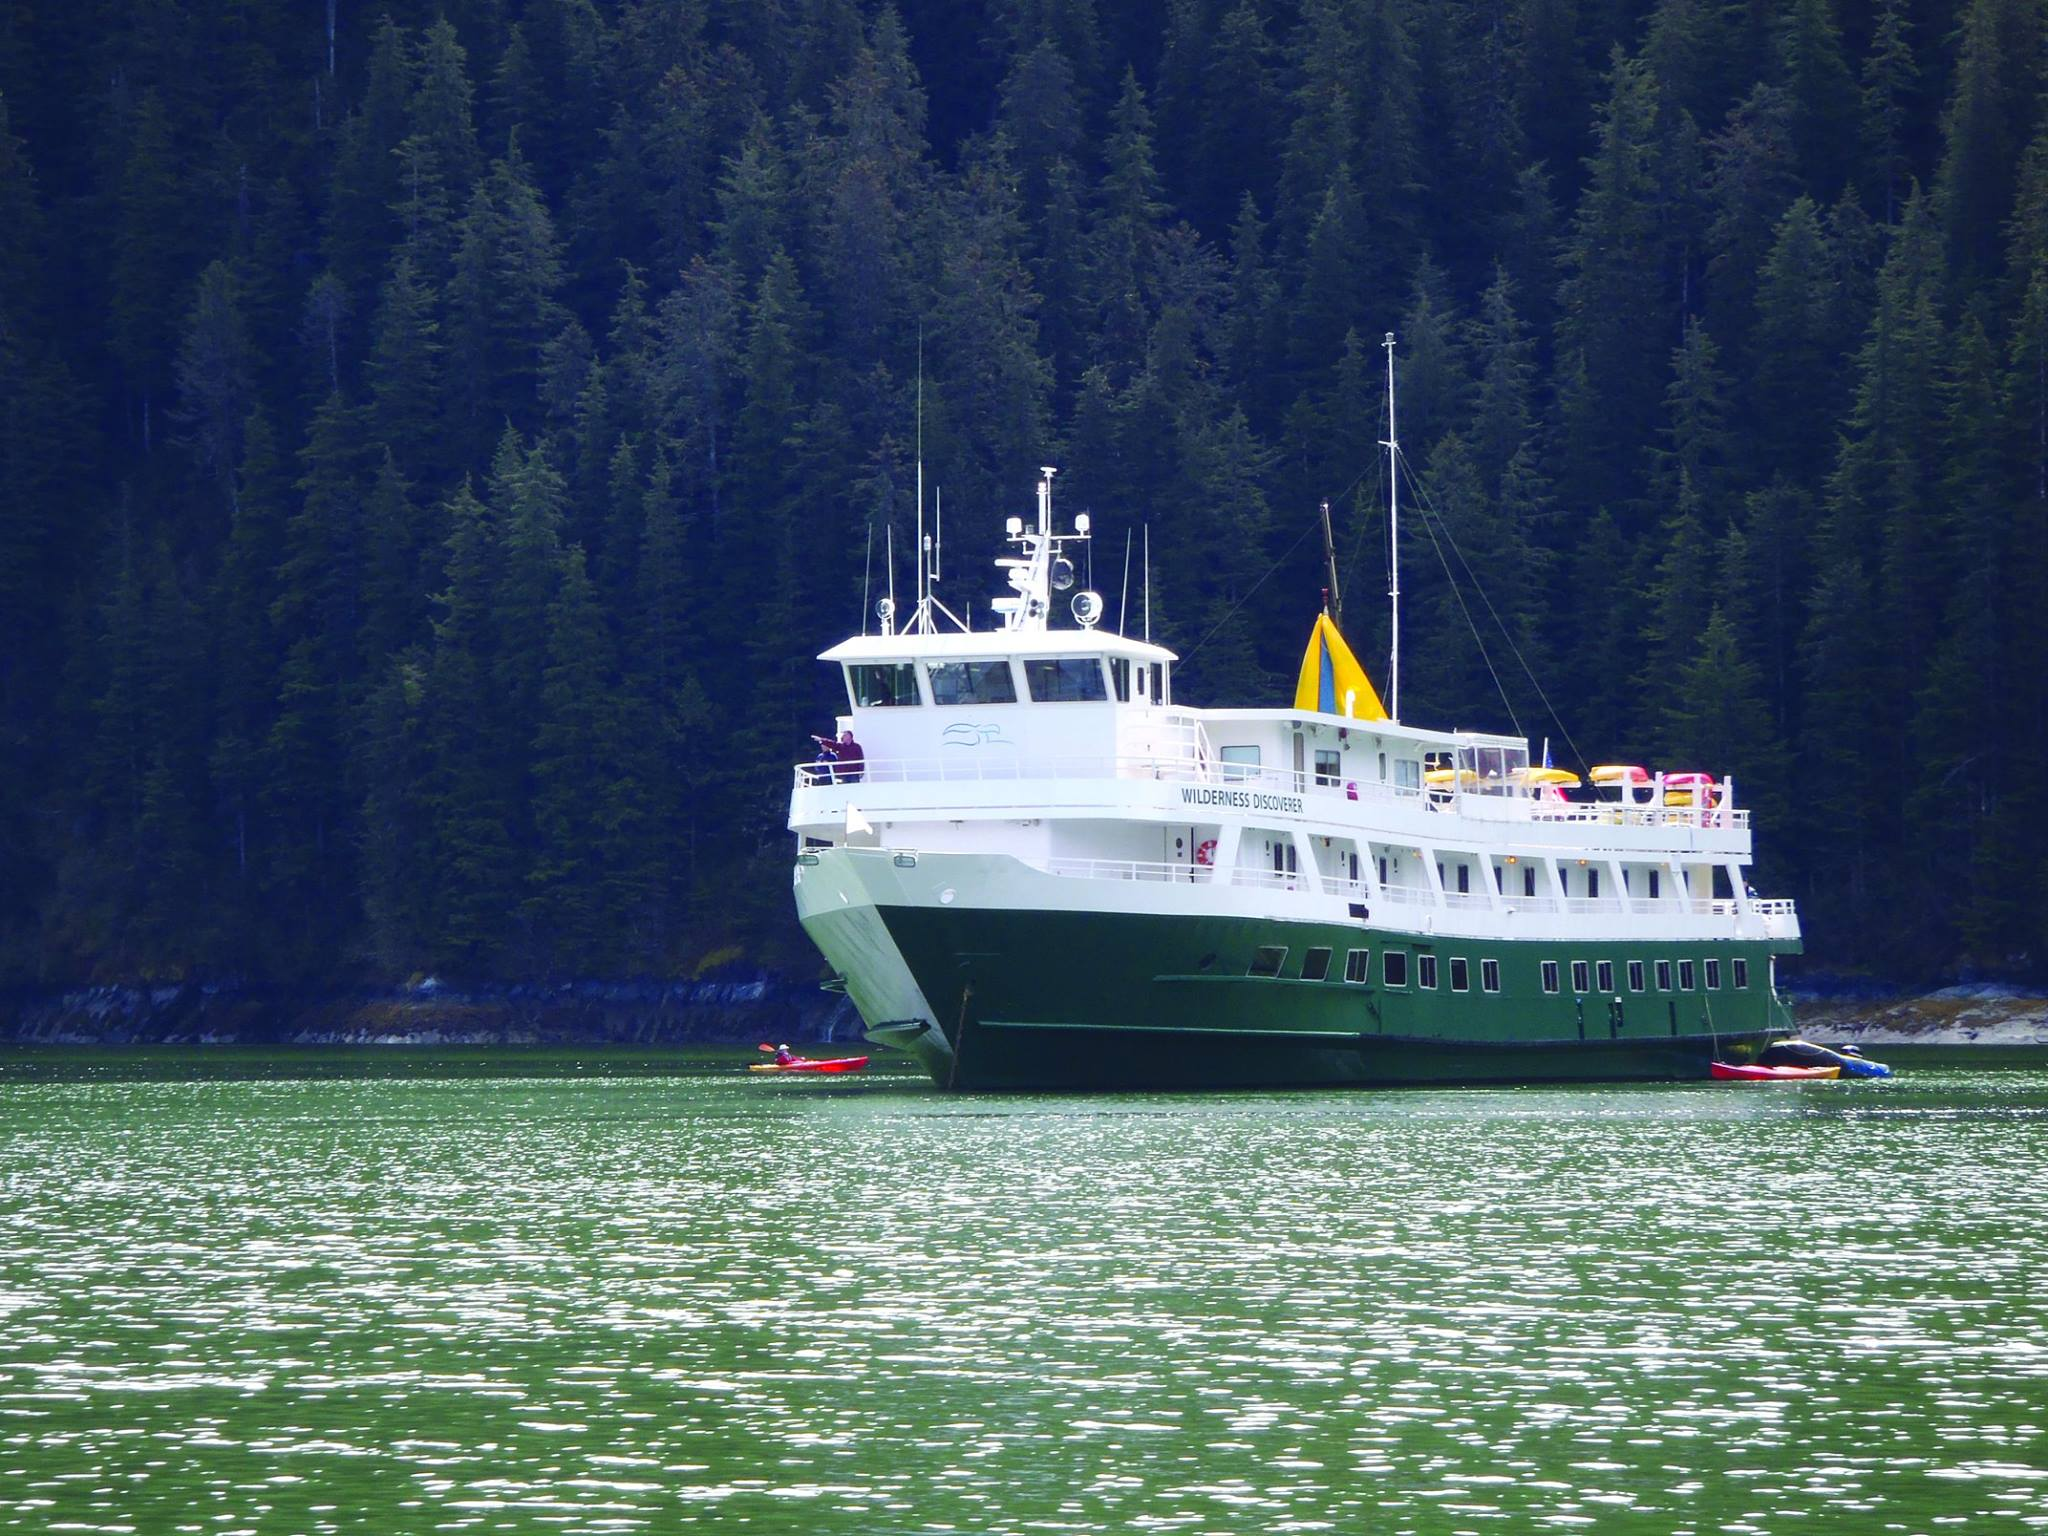 Wilderness Discoverer, the ship servicing Northern Passages & Glacier Bay (Wilderness Discoverer)